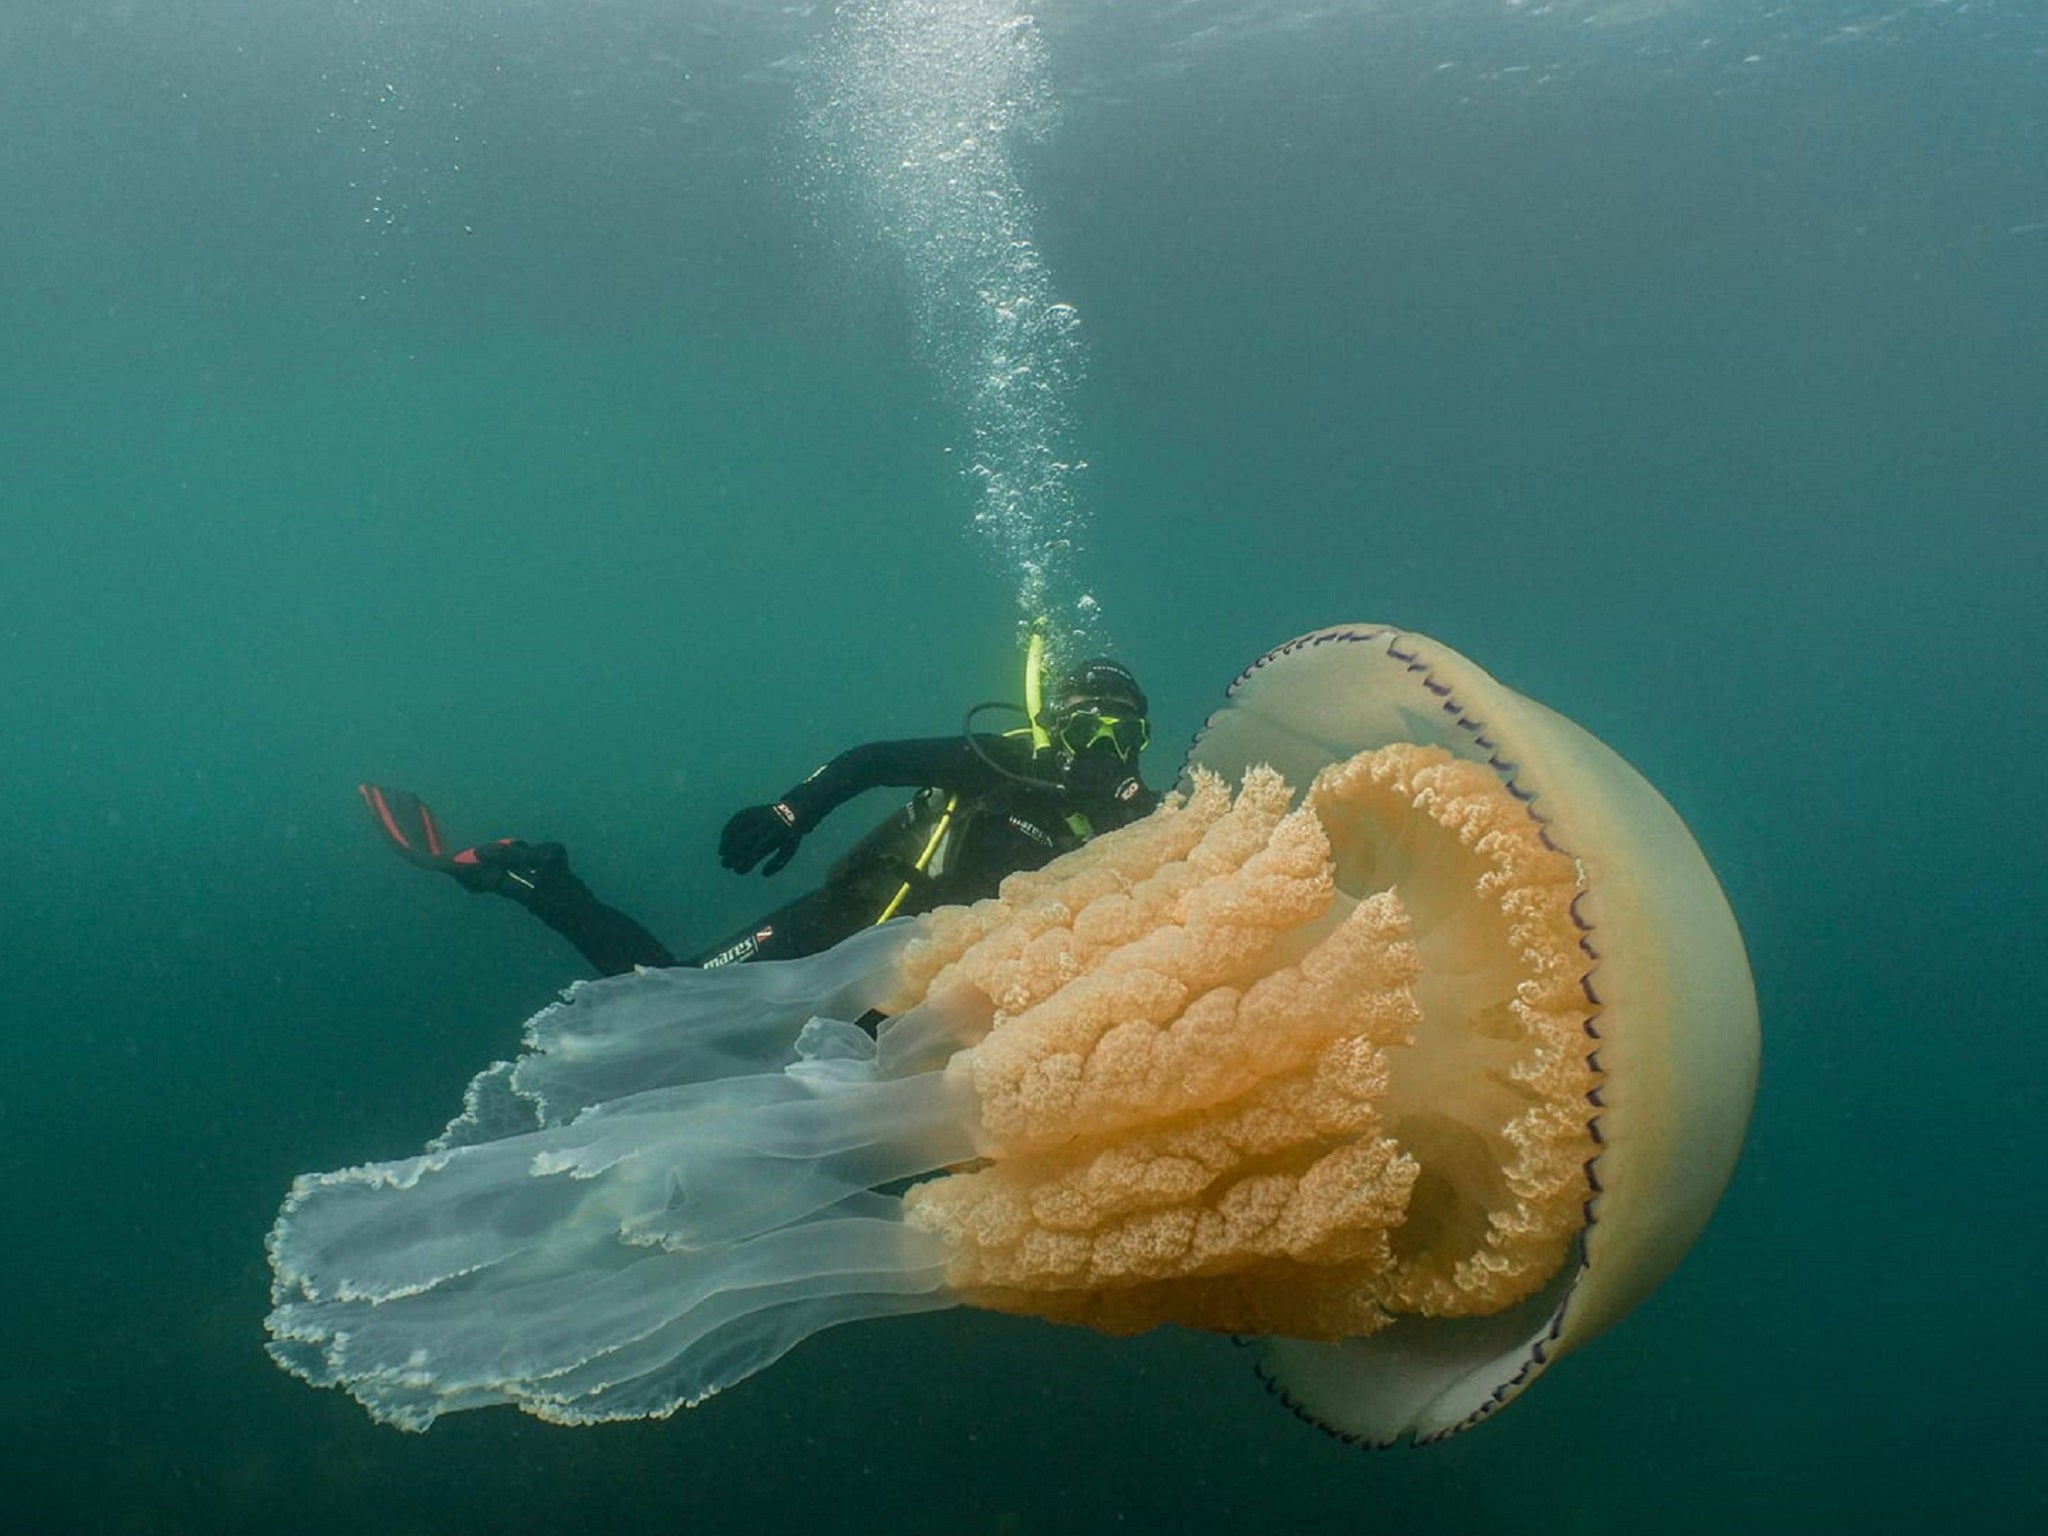 Giant jellyfish as big as diver appears off Cornish coast | The